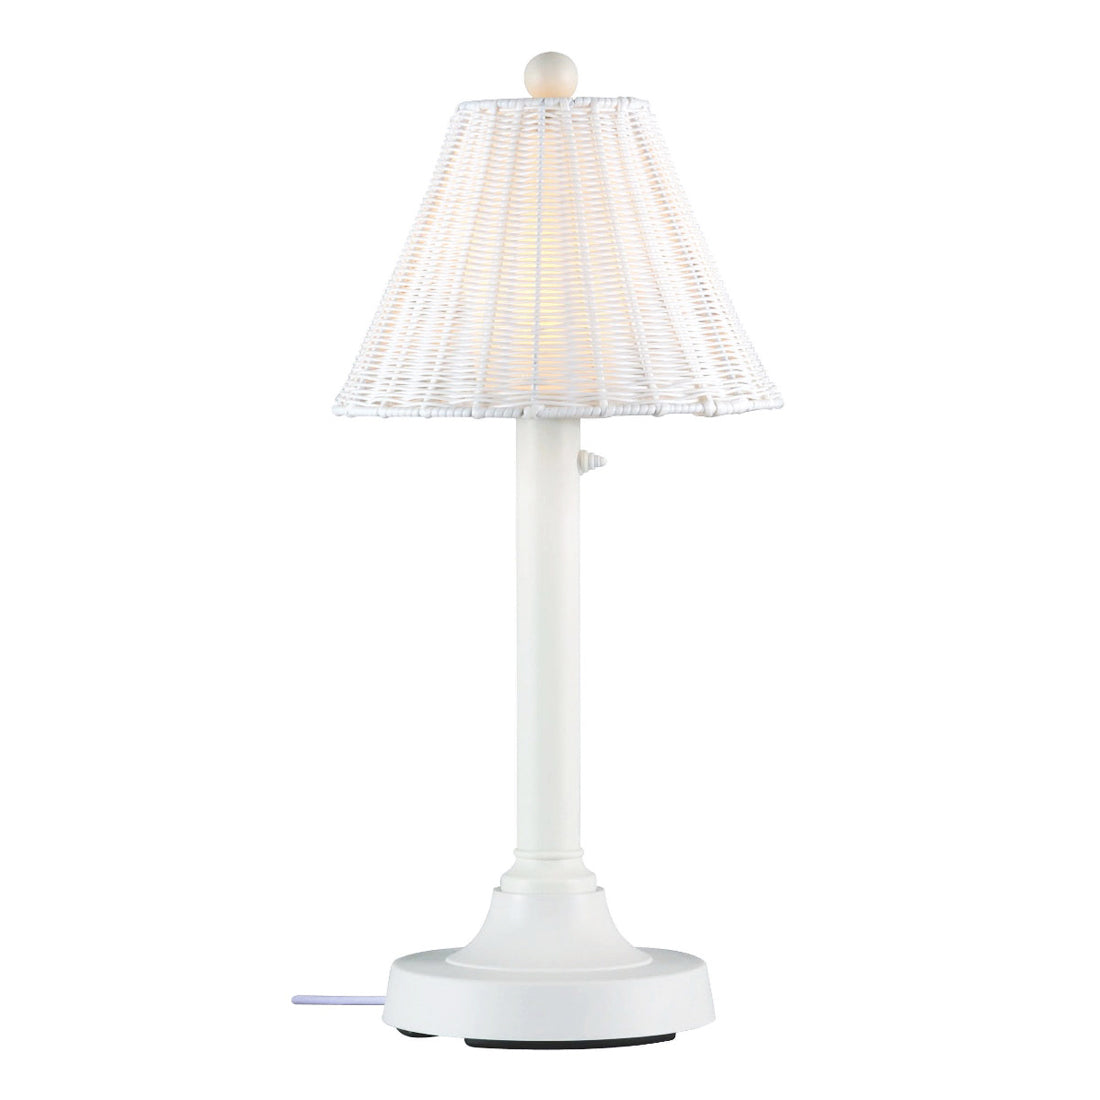 "Shangri-La 30"" Table Lamp 10221 with 2"" white tube body and tight weave, round wicker, white shade"